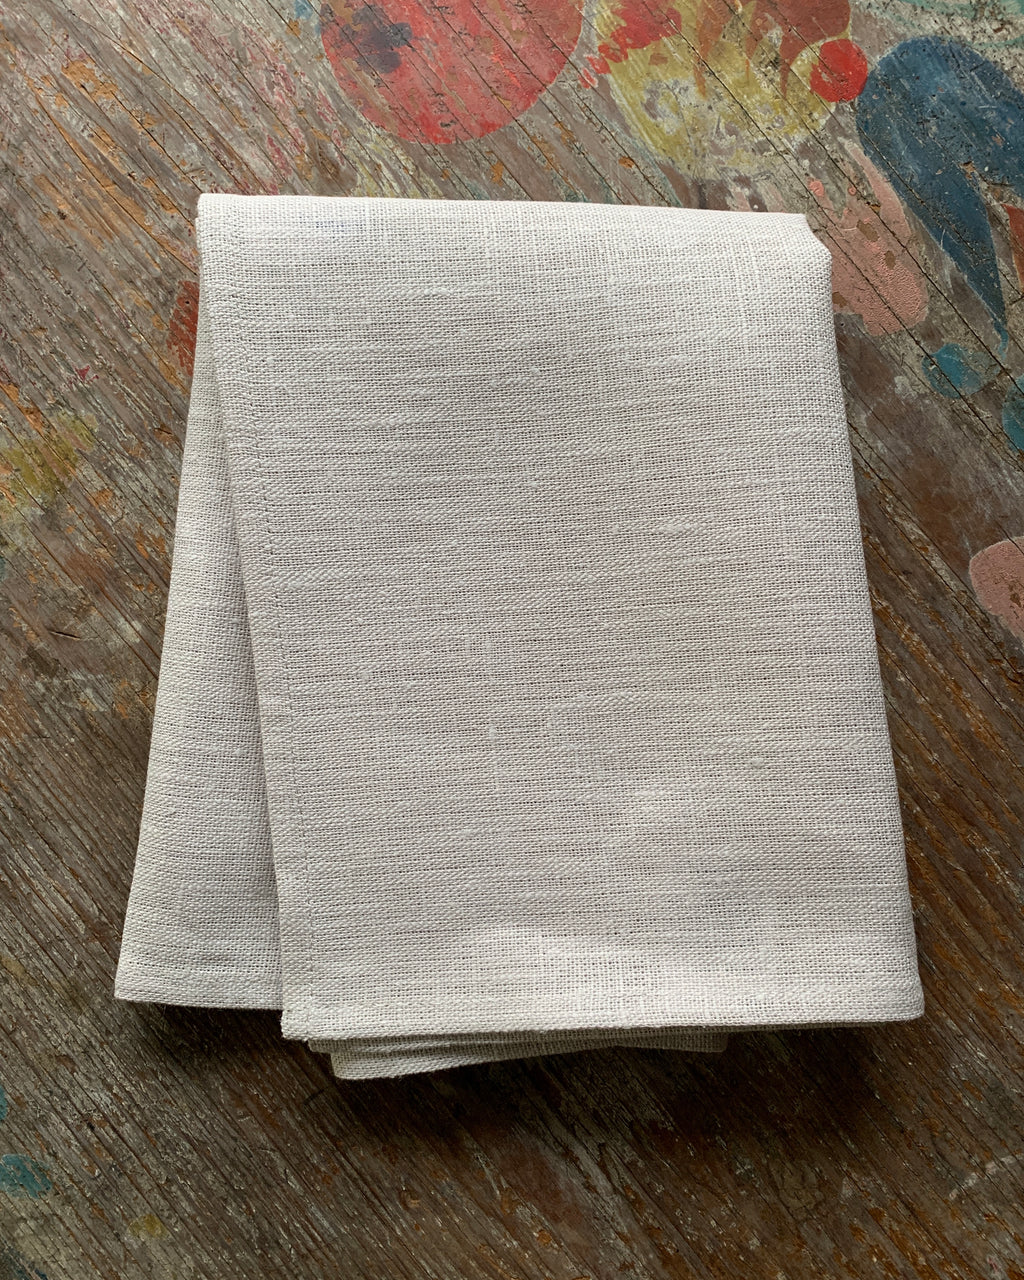 Thick Linen Kitchen Cloth: Albatre